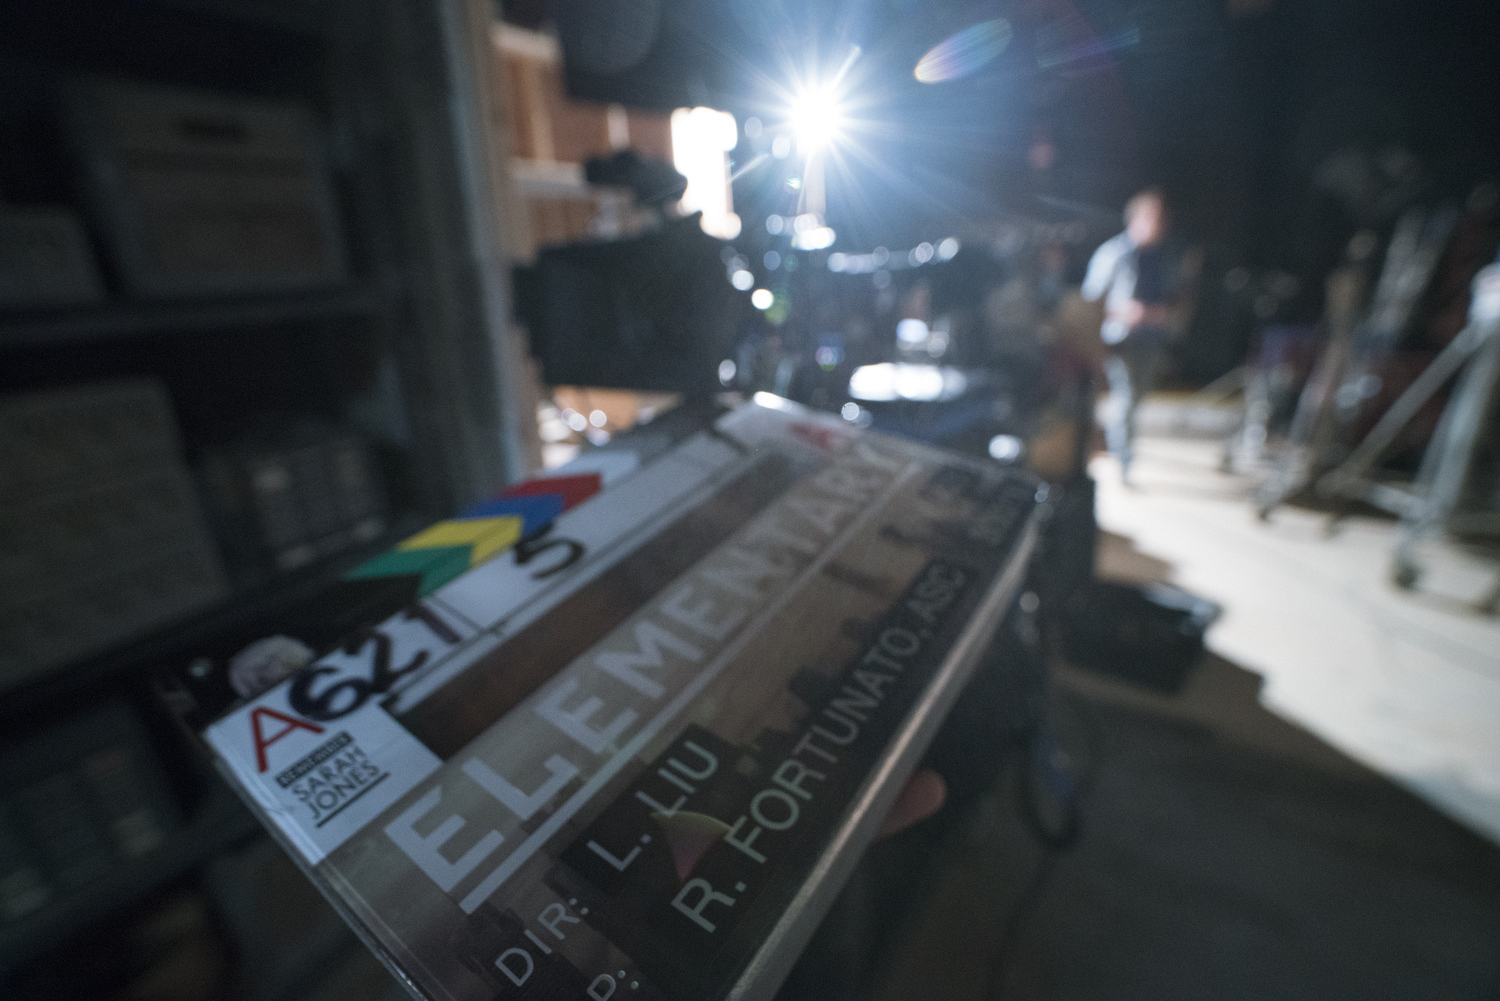 Directors have their name on the clapboard